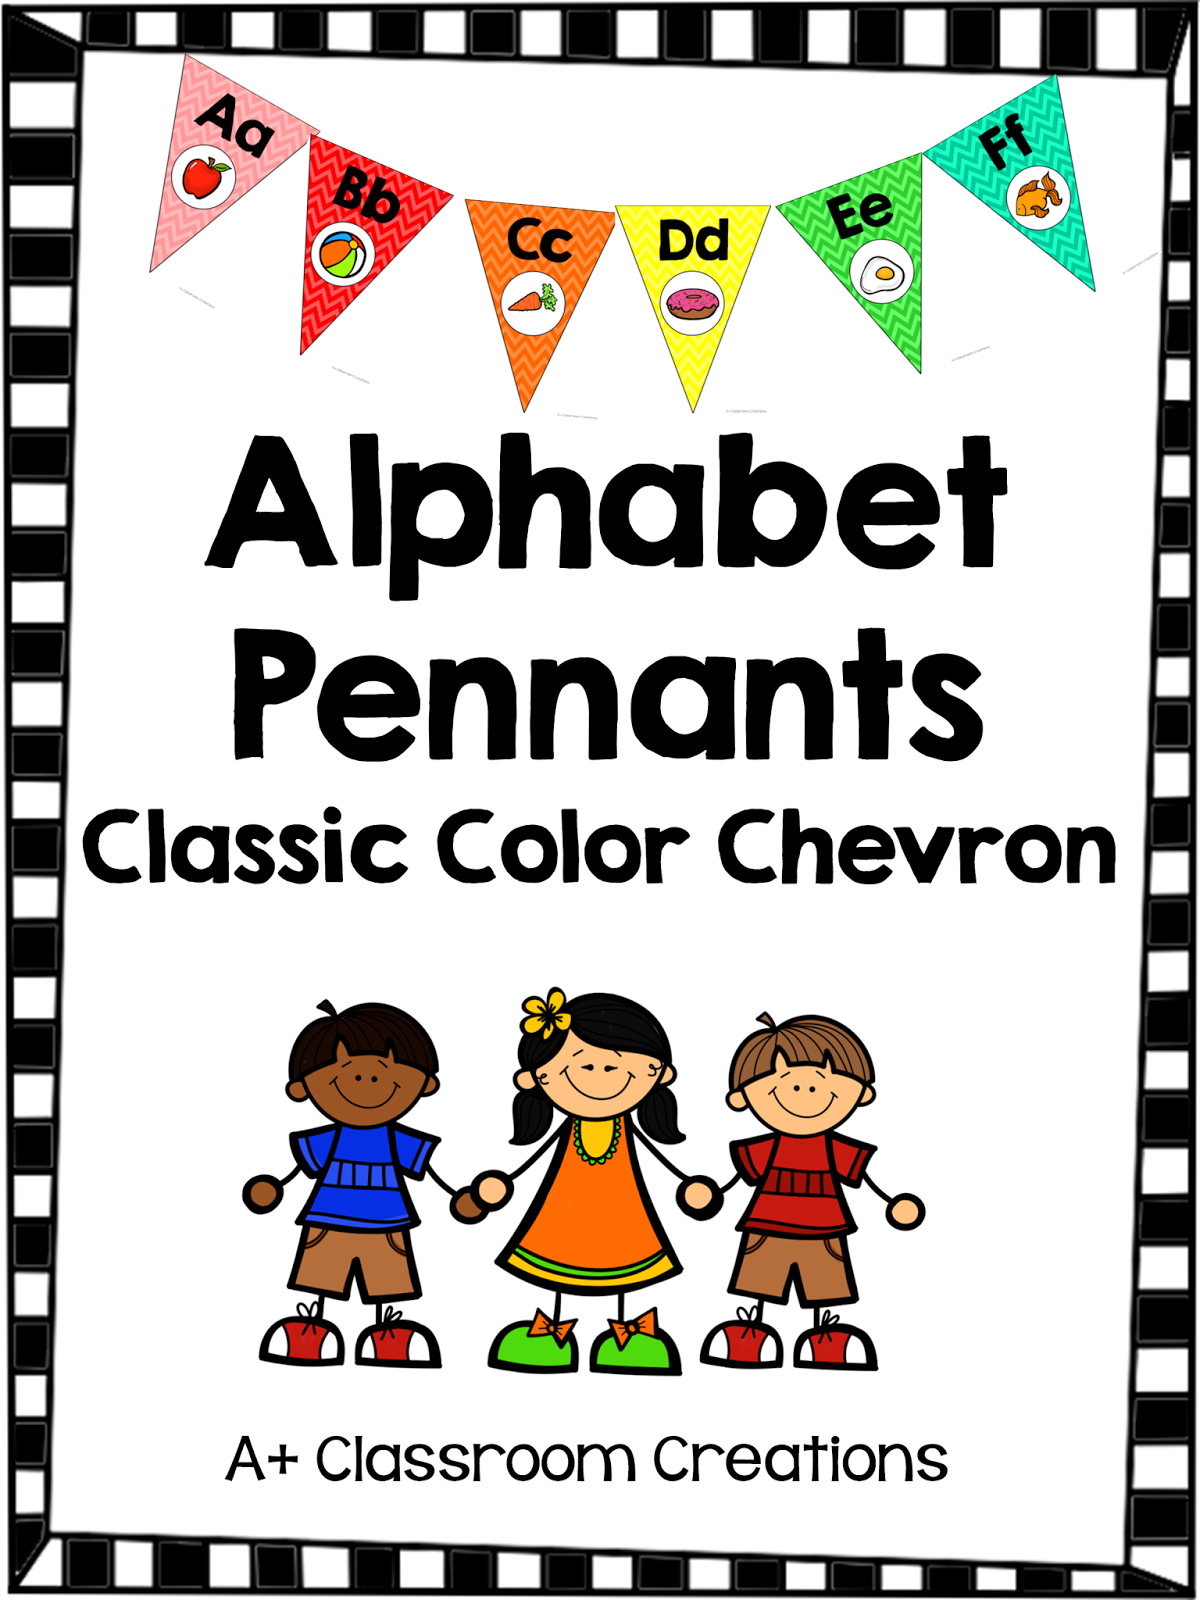 http://www.teacherspayteachers.com/Product/Alphabet-Pennants-Classic-Color-Chevron-1274579